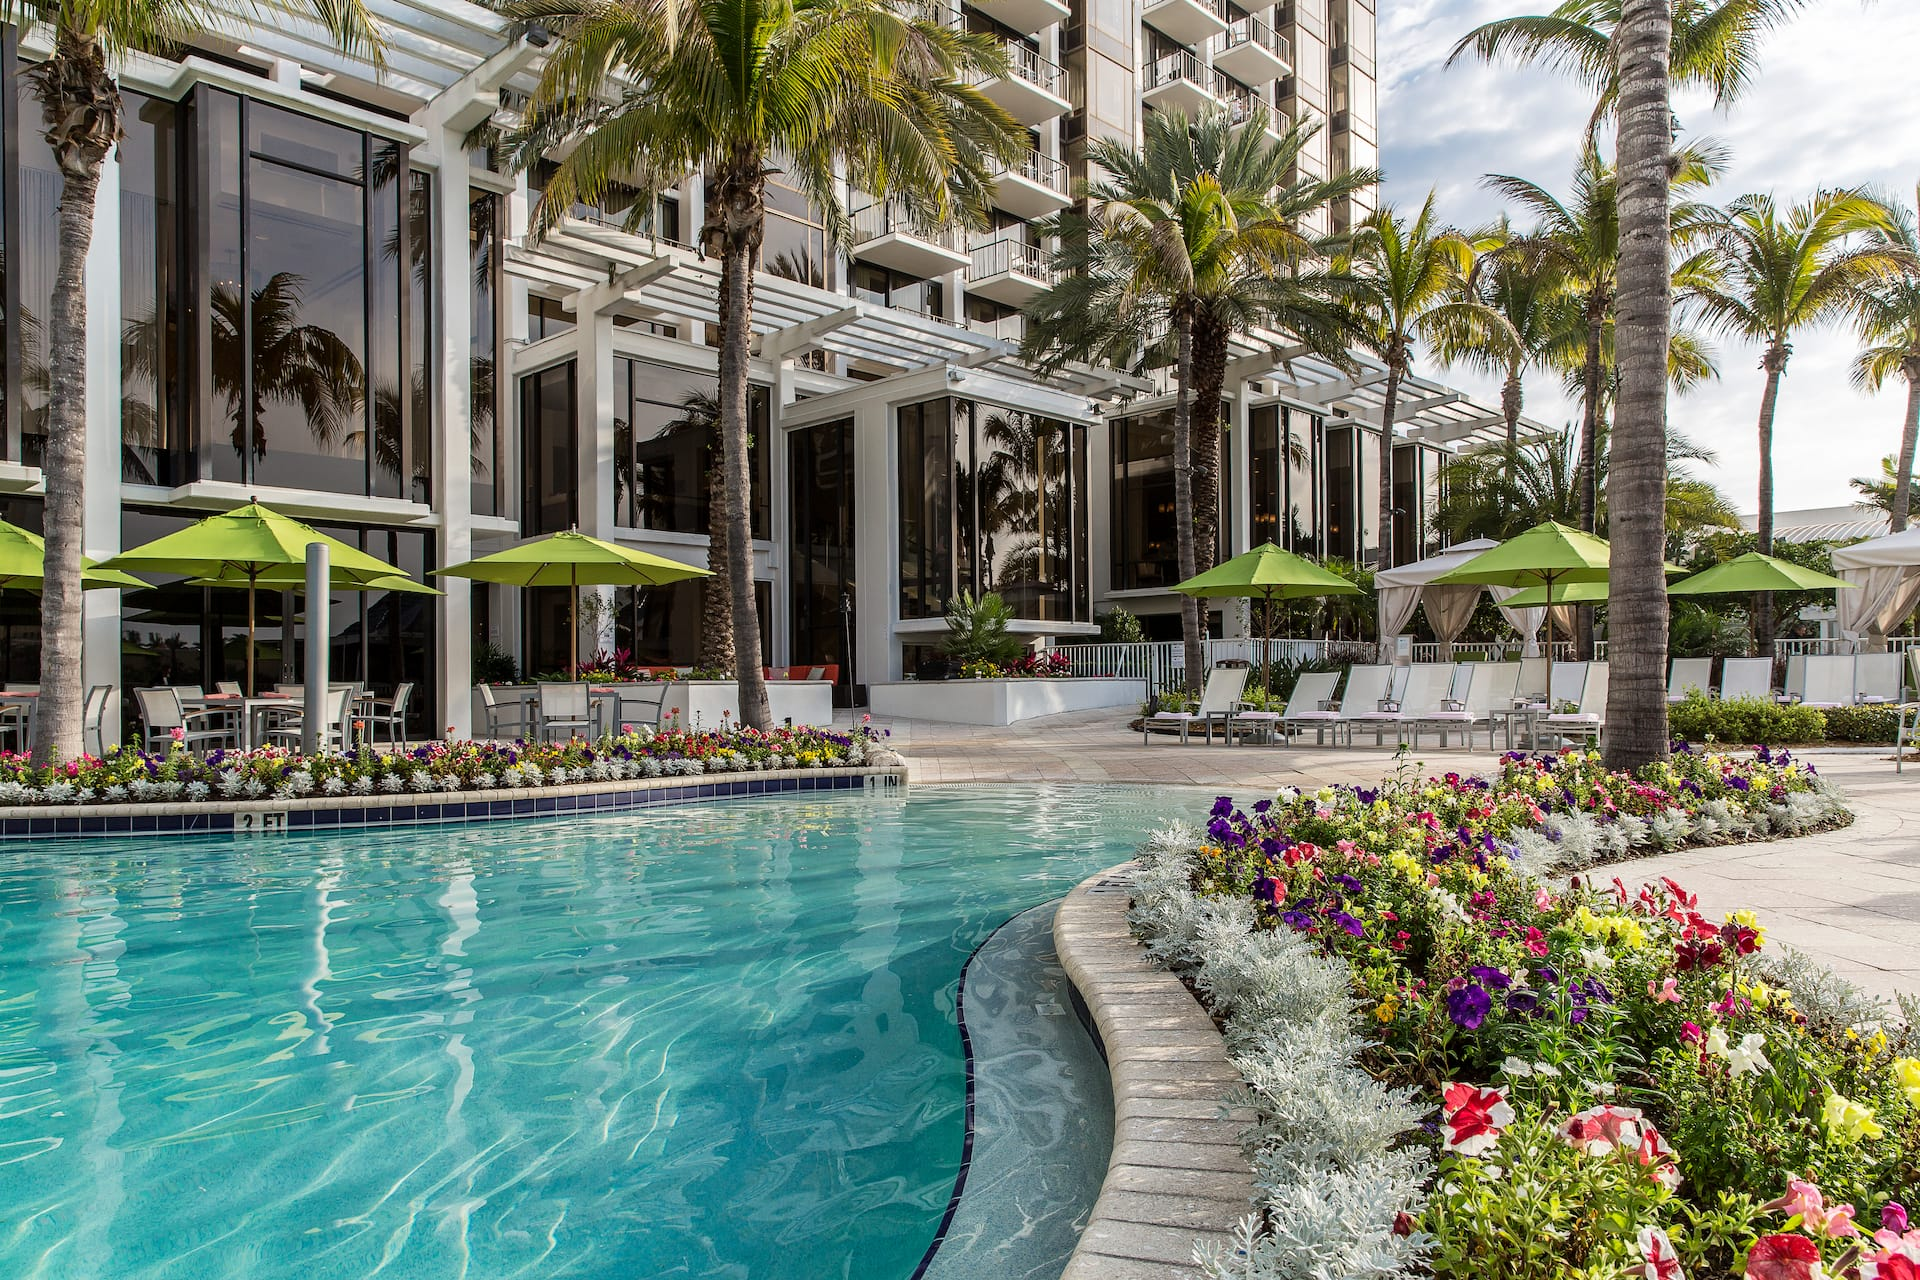 Hyatt Regency Sarasota Outdoor Pool